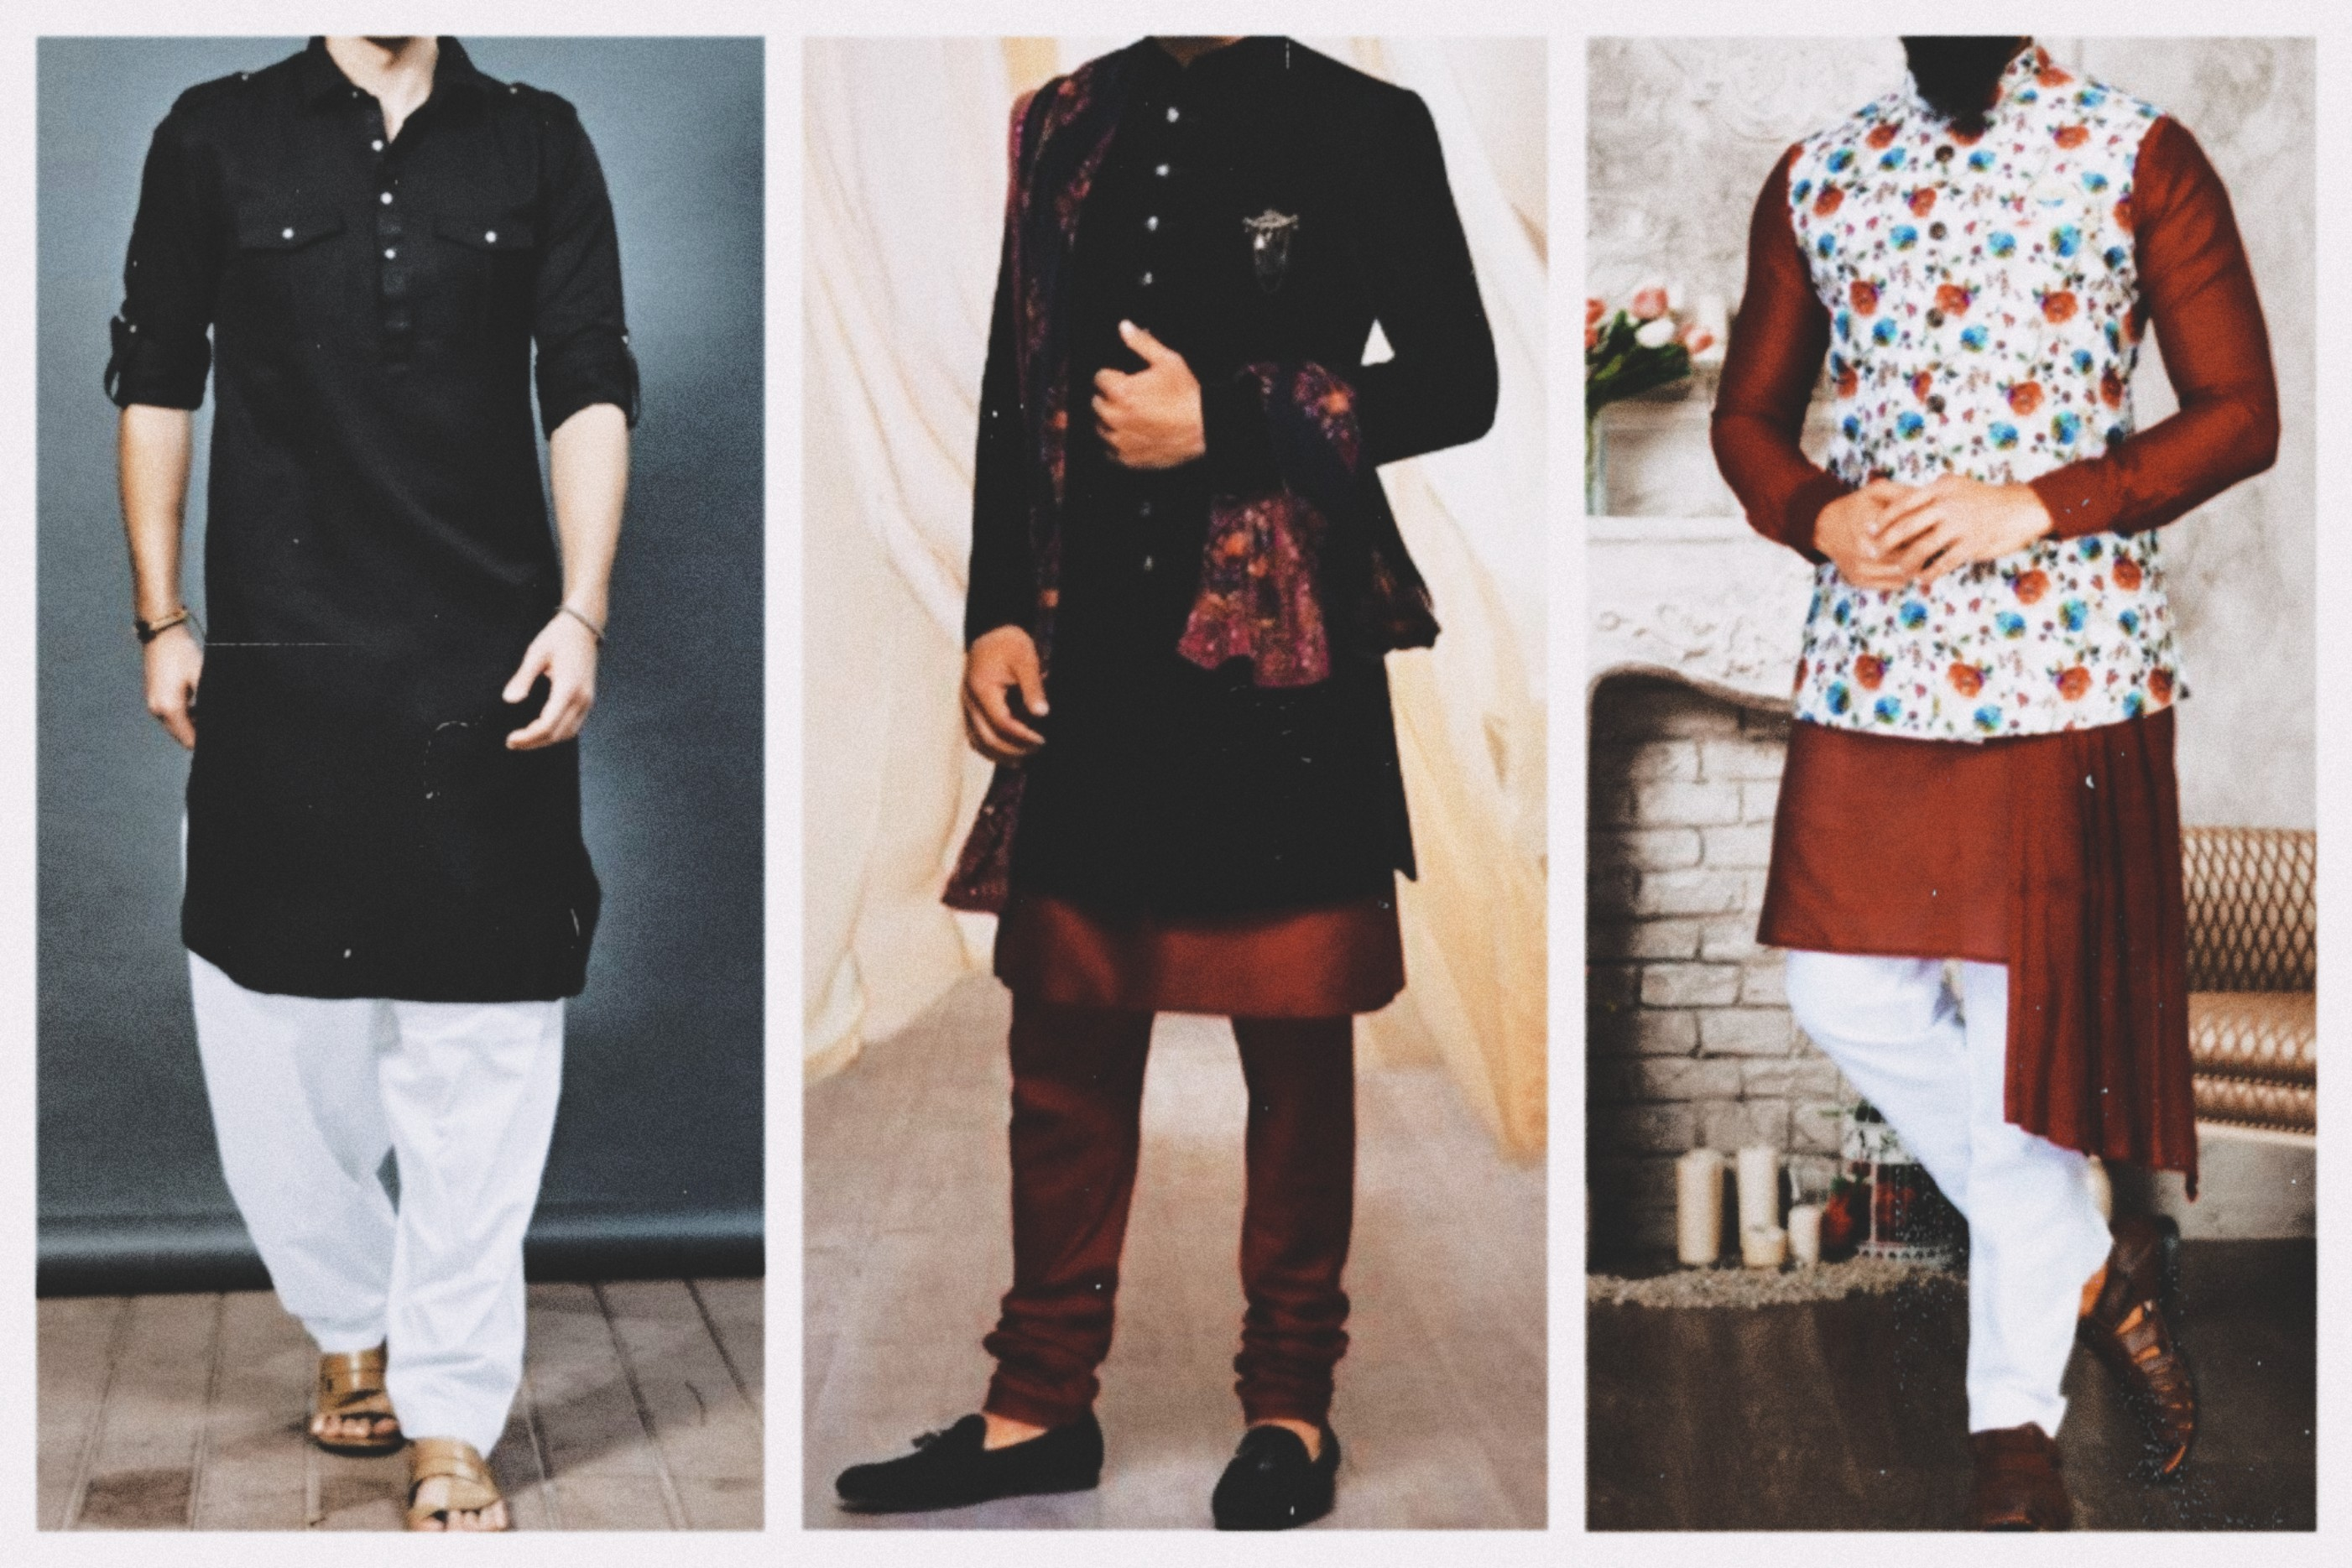 Three mens wearing kurta pajama in different ways.